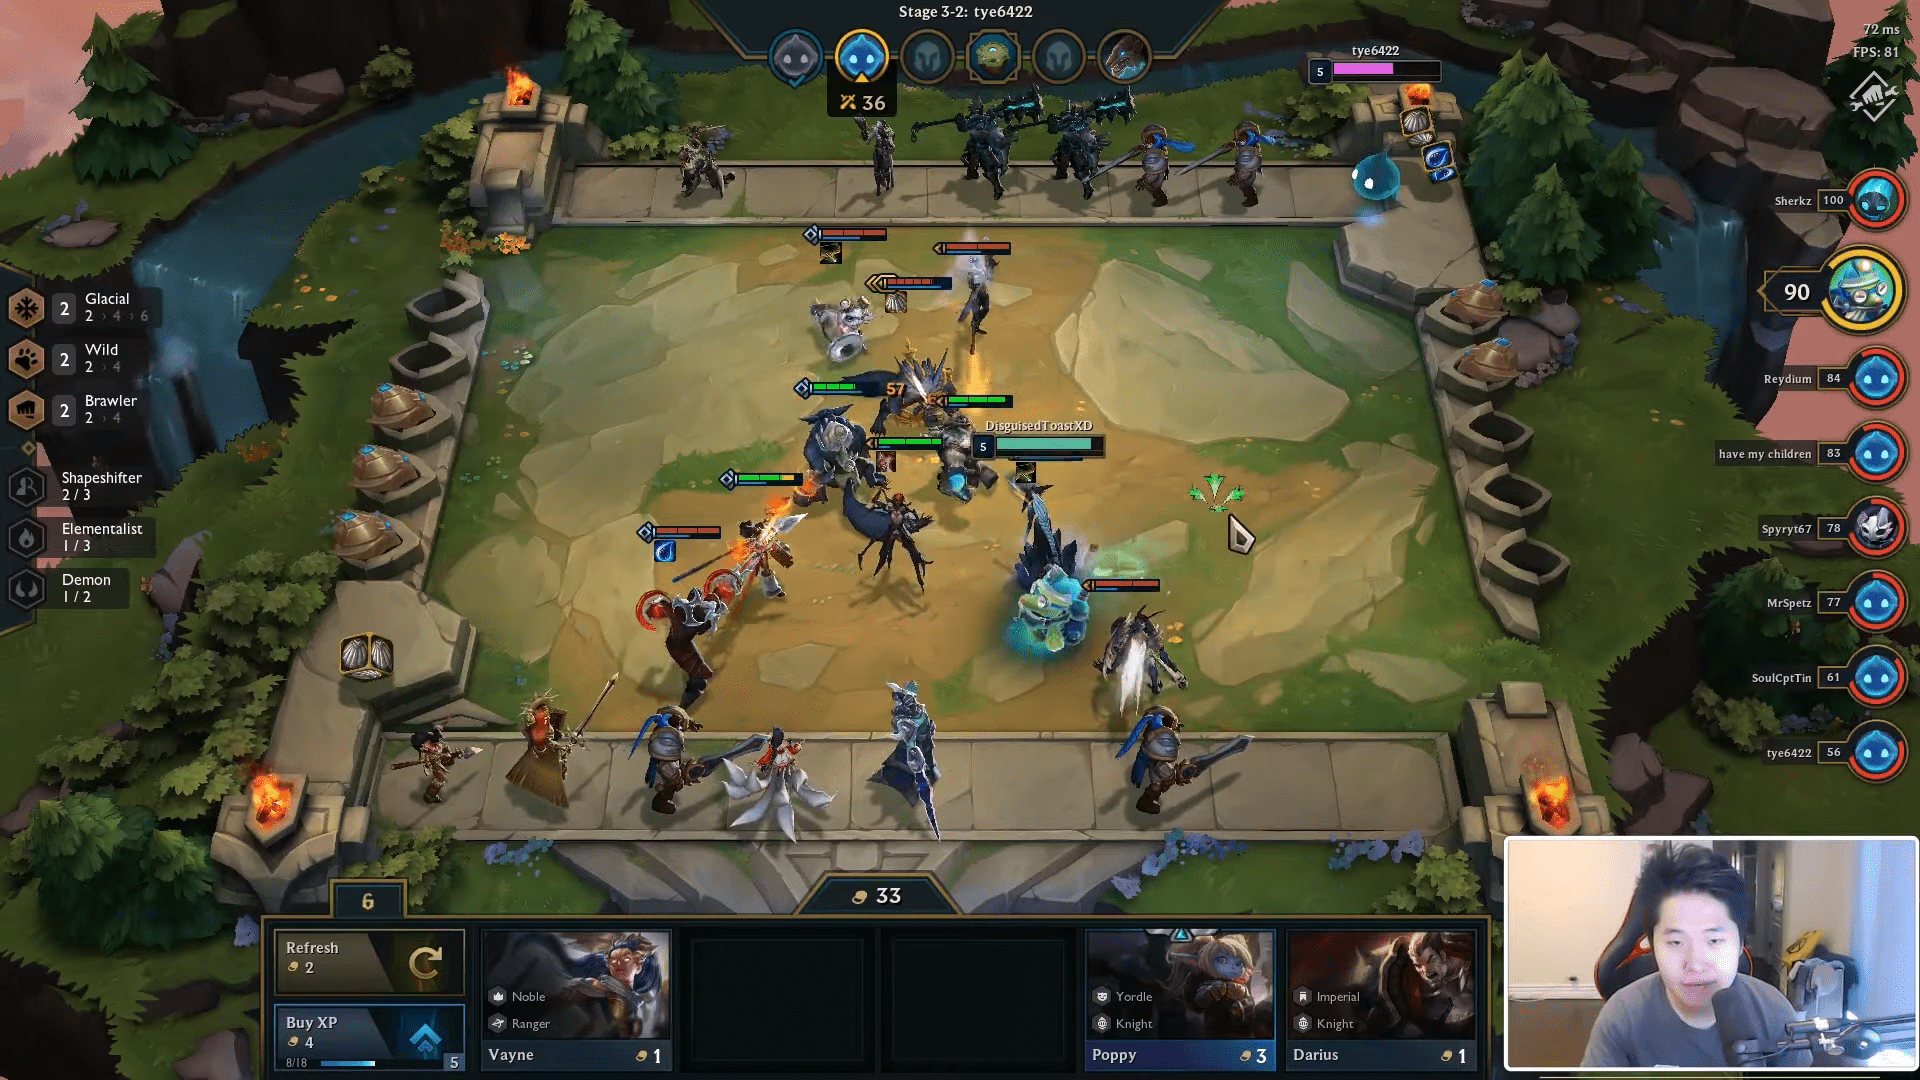 Teamfight Tactics: Breaking Down The Basics Of League Of Legends New Game Mode